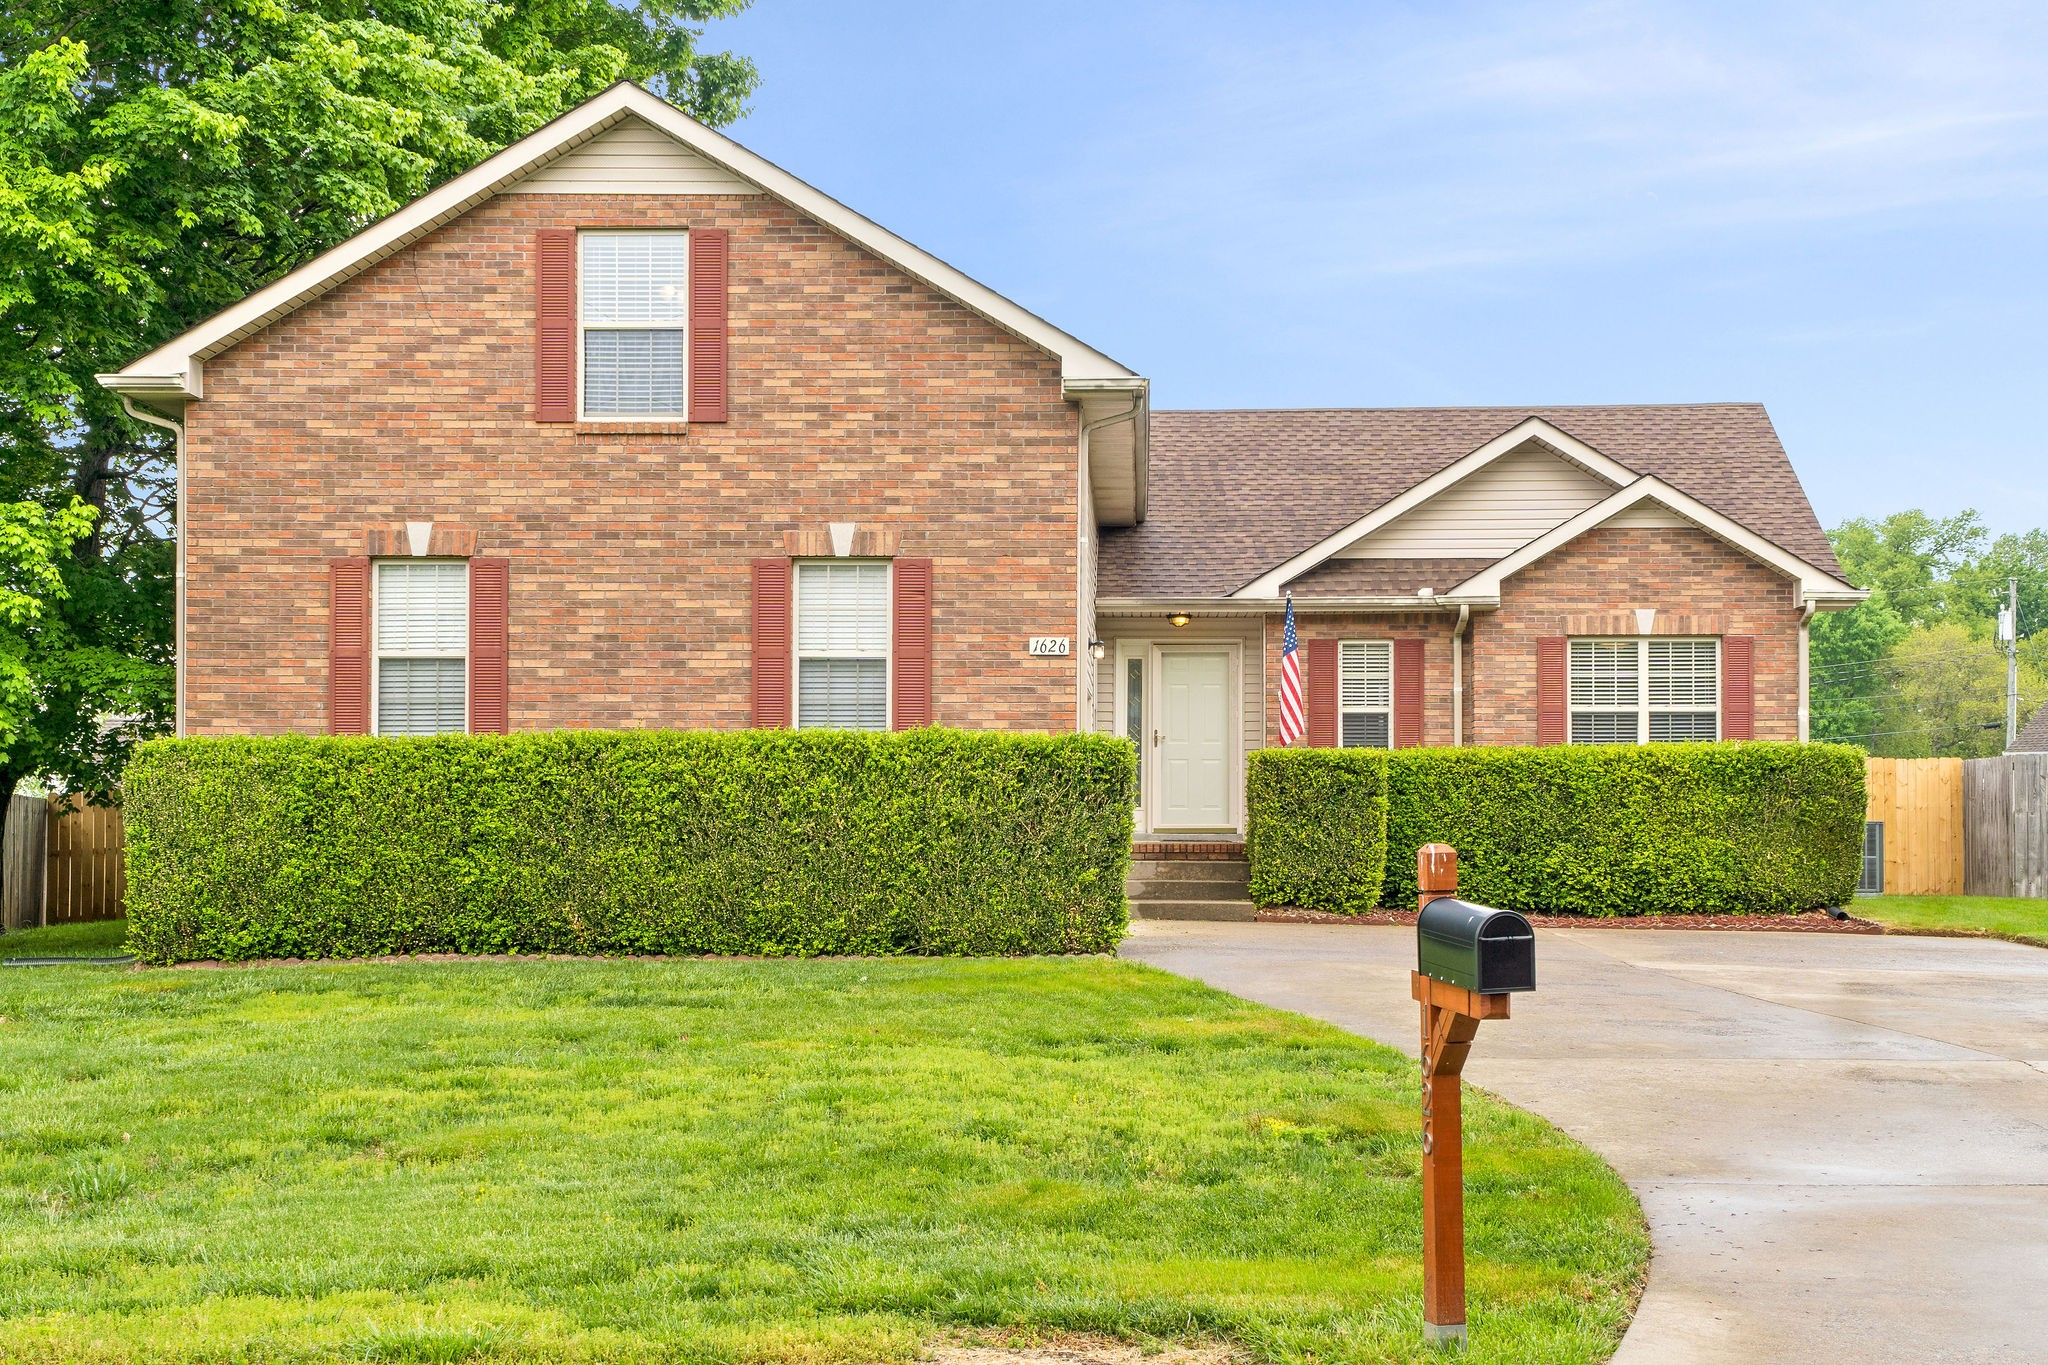 Welcome Home! 3 Bedrooms & Bonus Room - Privacy Fence - Fireplace - Full Size Laundry Room - Master Suite with 2 Walk-in Closets - Formal Dining + Eat-in Kitchen - Stainless Steel Appliances - Come See Today! Offer Deadline Sunday May 2nd at 5pm!